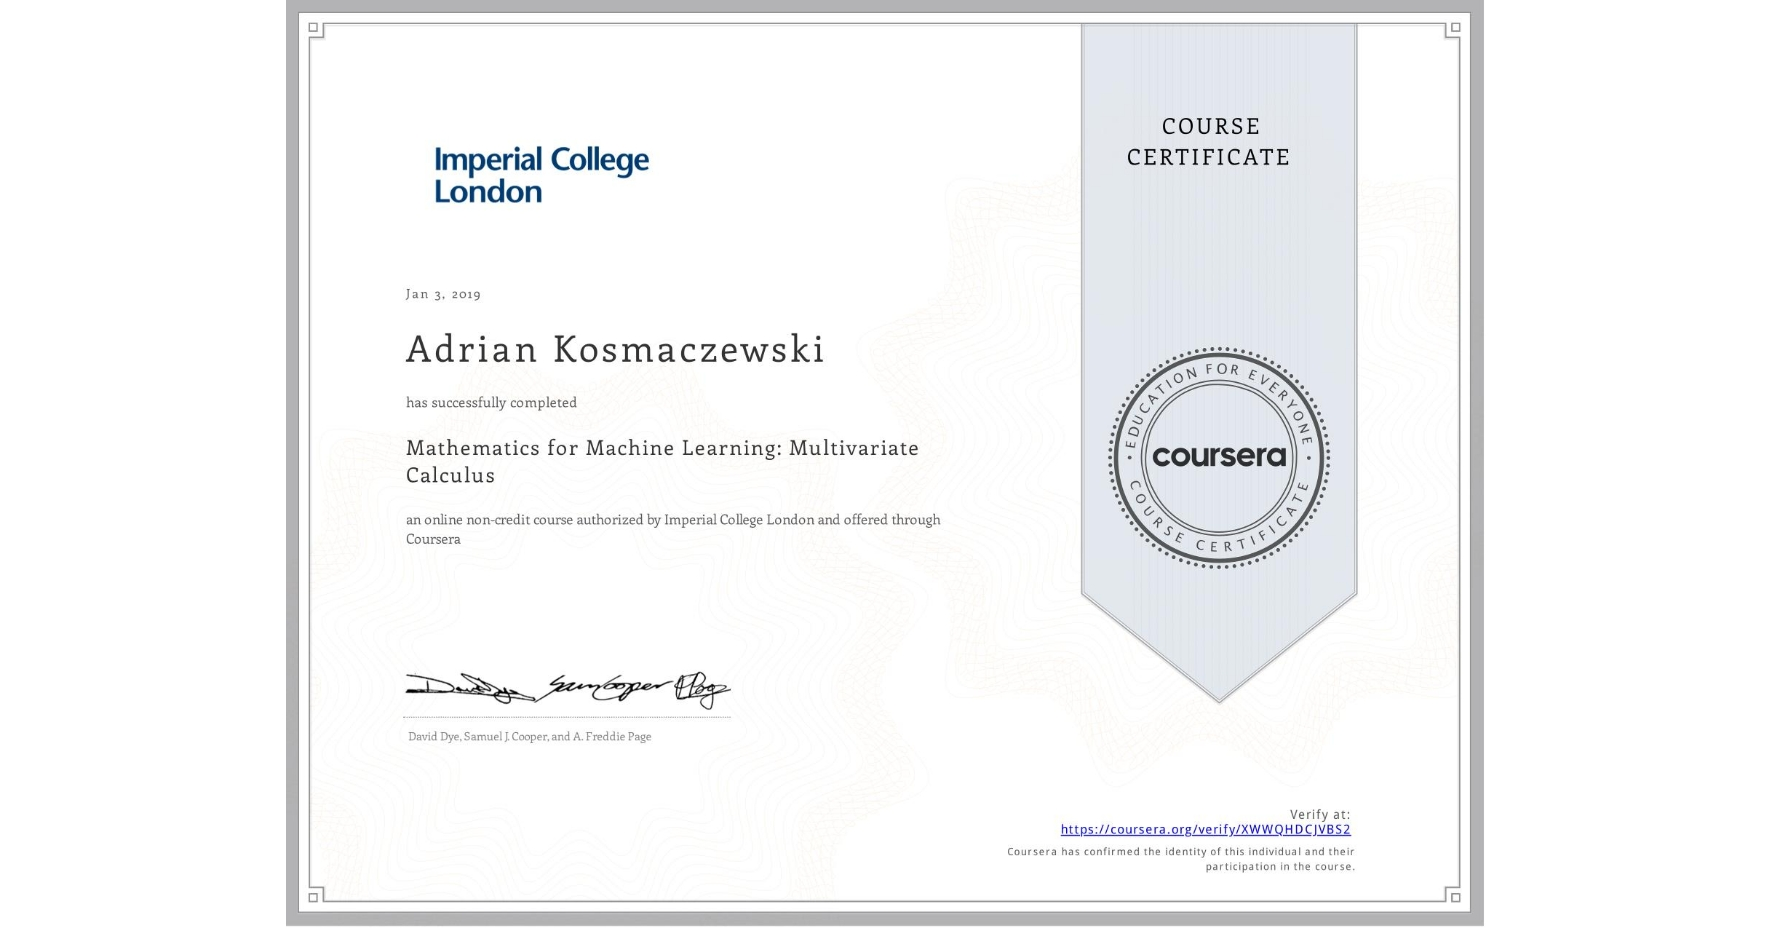 View certificate for Adrian Kosmaczewski, Mathematics for Machine Learning: Multivariate Calculus, an online non-credit course authorized by Imperial College London and offered through Coursera